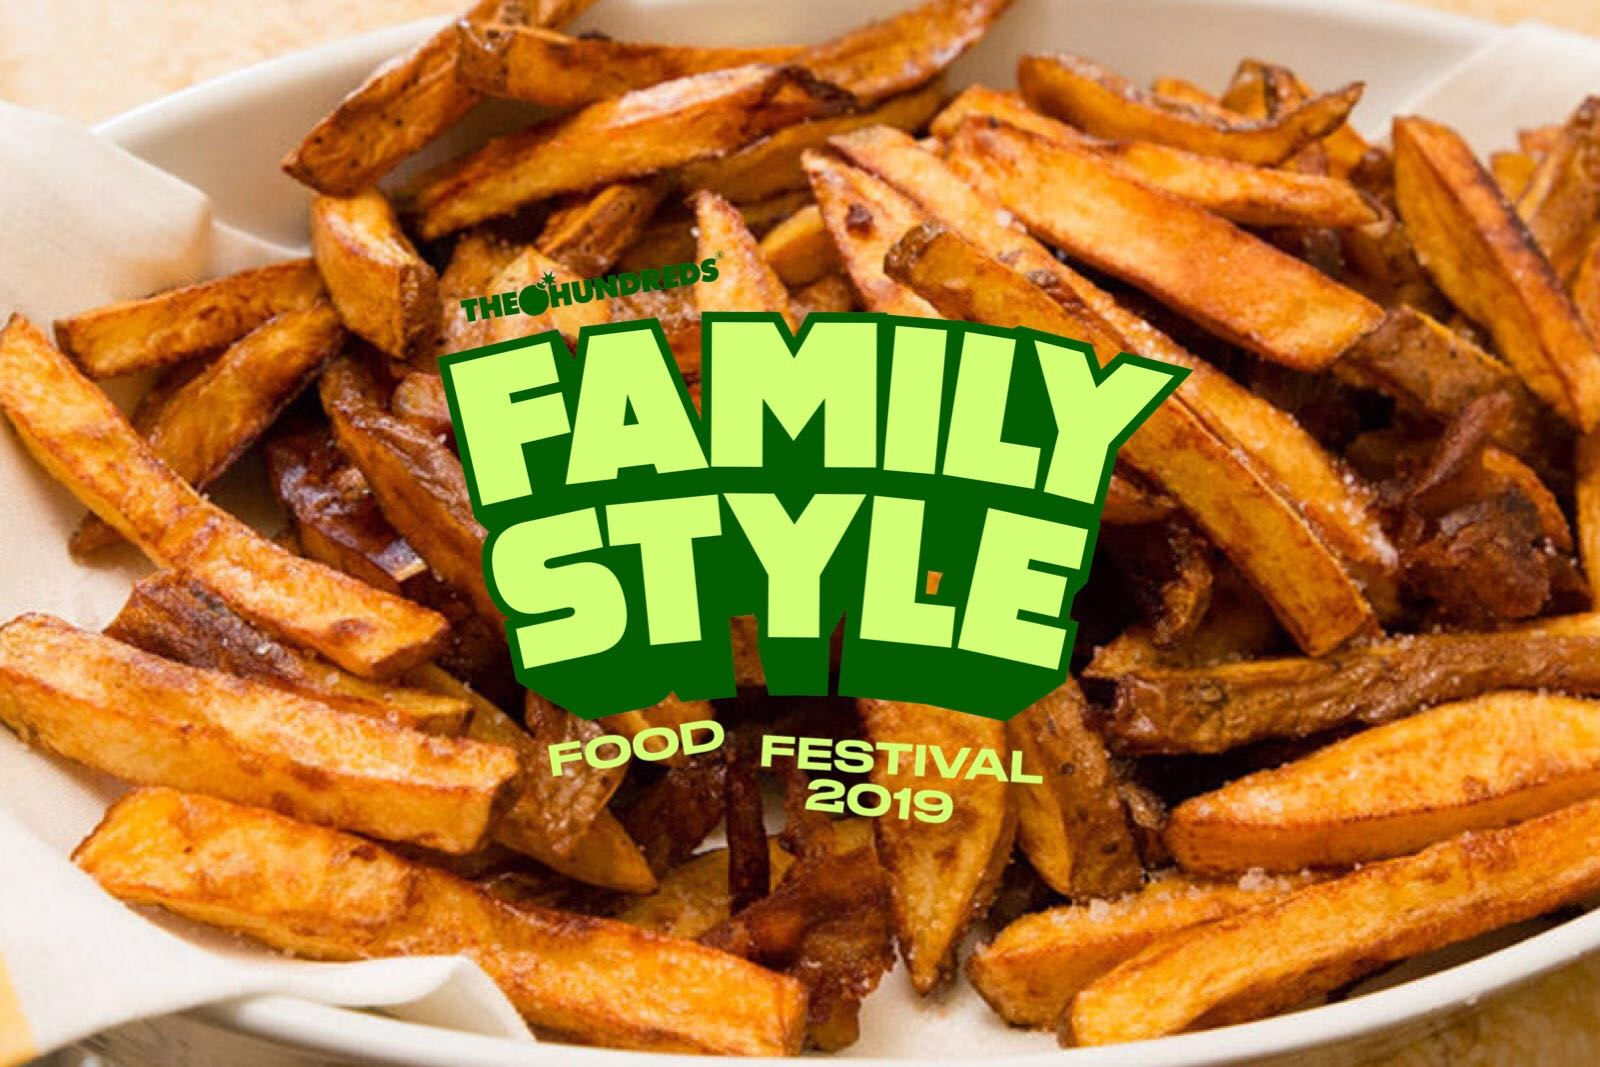 FAMILY STYLE FEST :: The Great Fry Debate